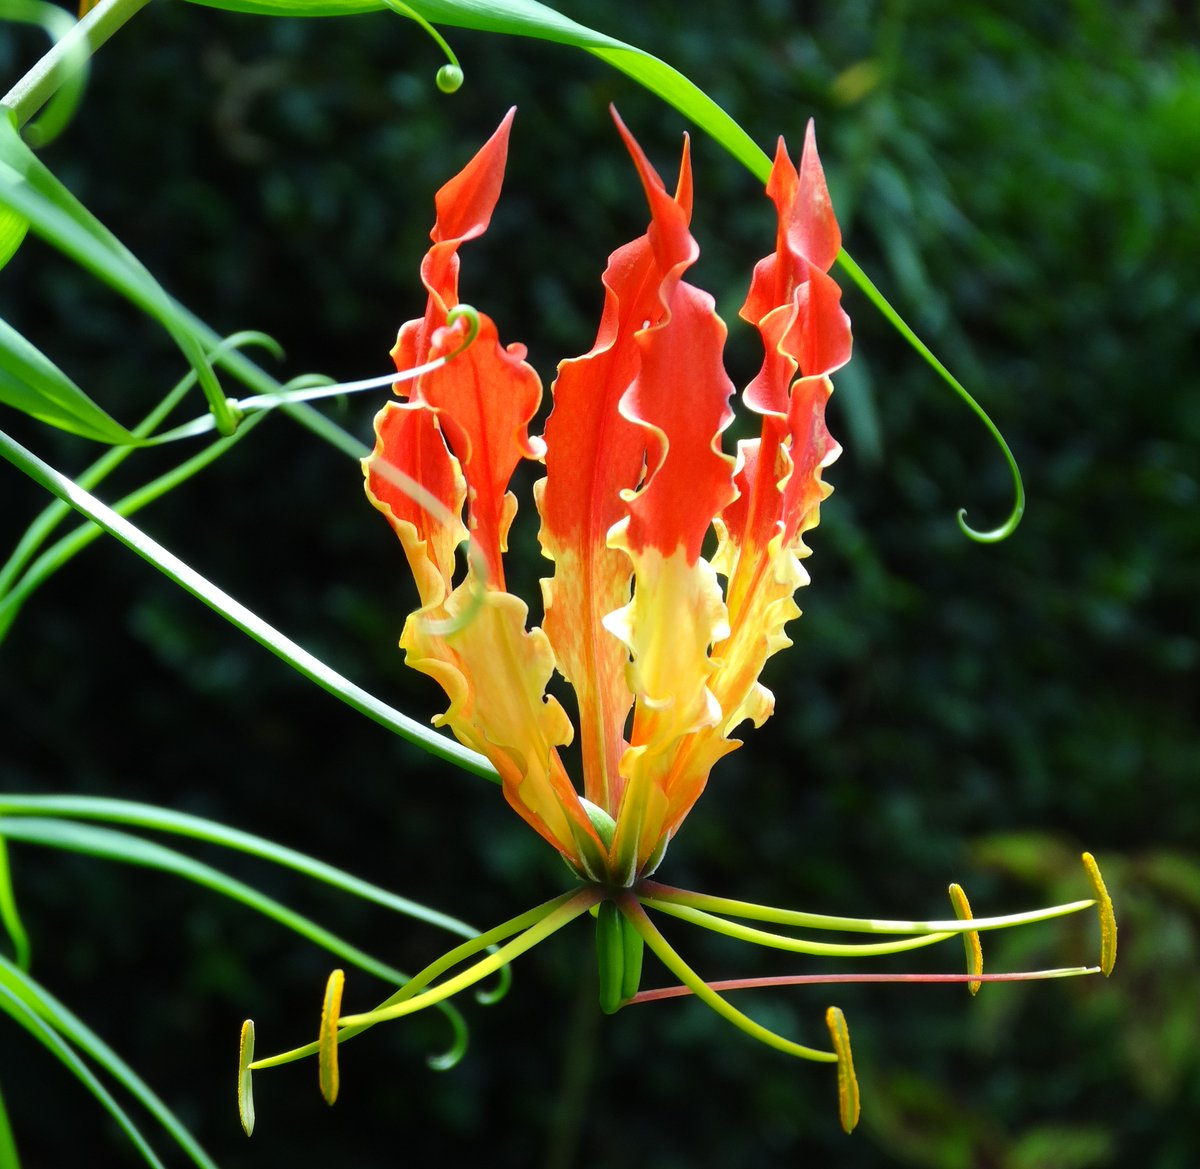 Flowers of sri lanka on twitter gloriosa superba glory lily flowers of sri lanka on twitter gloriosa superba glory lily liliaceae a native climber also in trop africa asia famous plant tuber v toxic izmirmasajfo